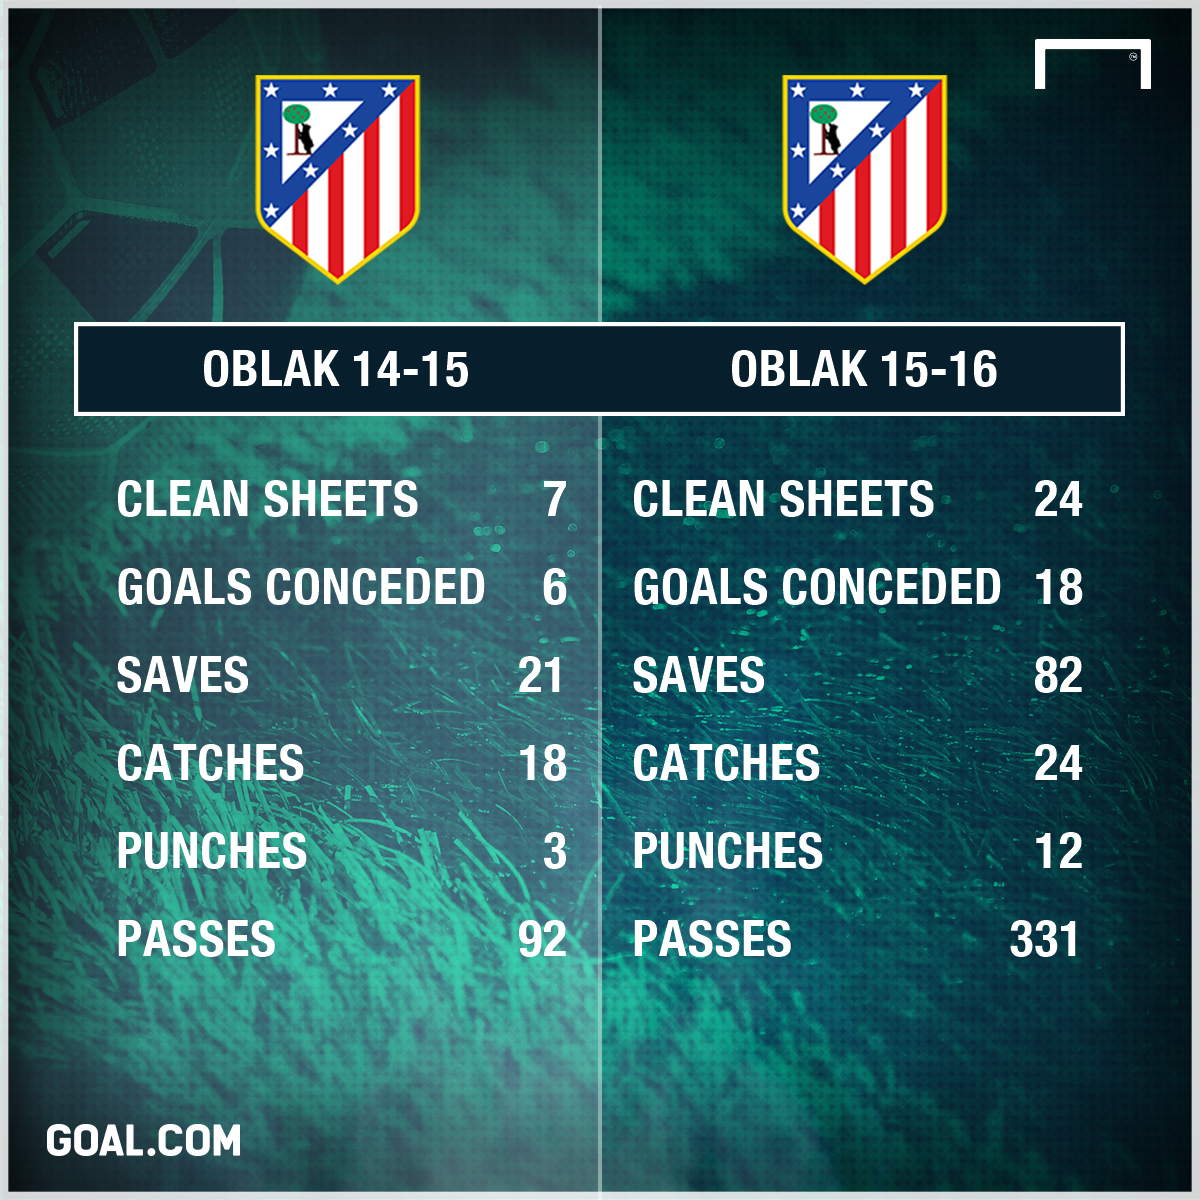 Jan Oblak Atletico Madrid 14-16